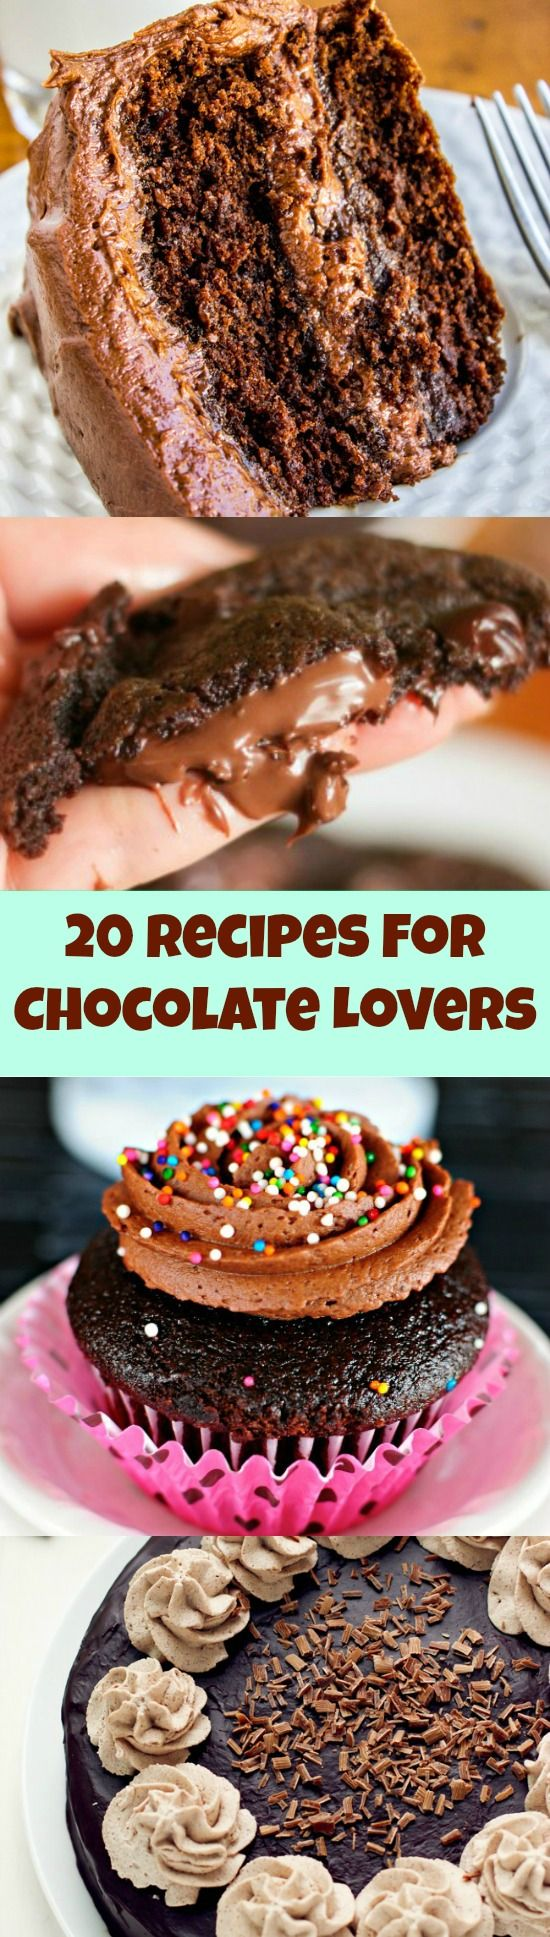 20 of the very BEST Recipes for Chocolate Lovers!